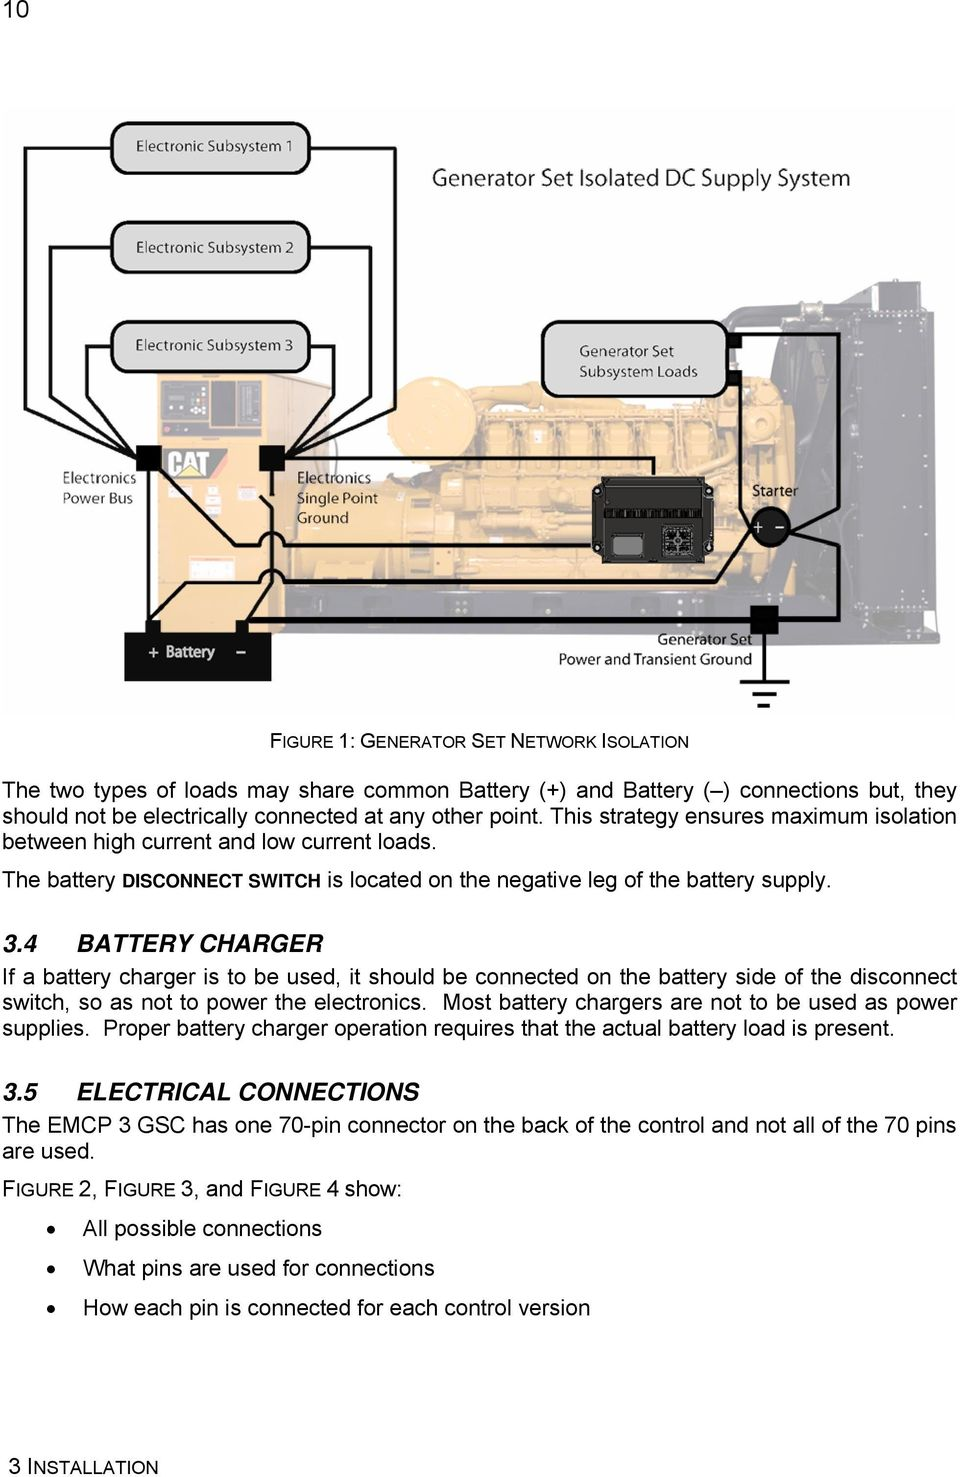 Emcp 31 32 33 Generator Set Control Pdf 543 Cat Engine Diagram 4 Battery Charger If A Is To Be Used It Should Connected